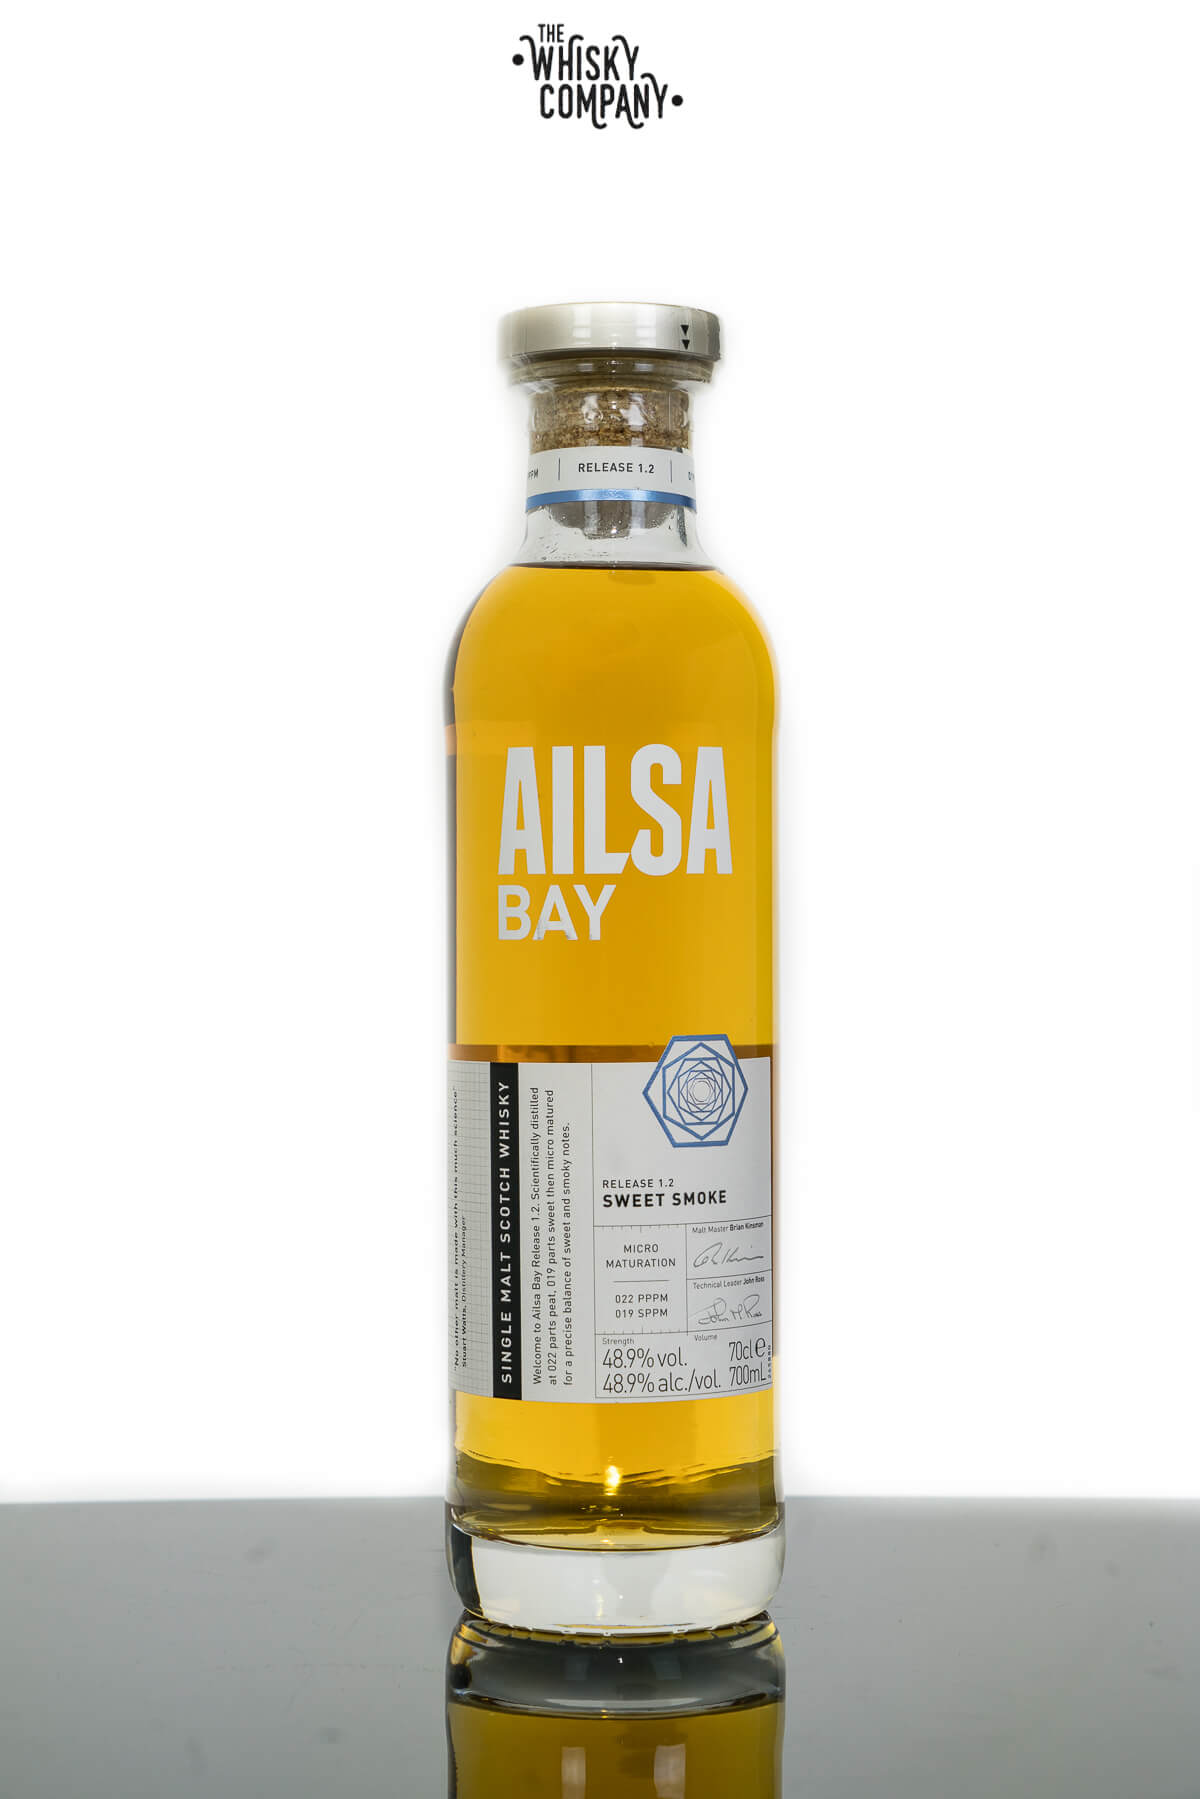 Ailsa Bay Release 1.2 Sweet Smoke Single Malt  Scotch Whisky (700ml)